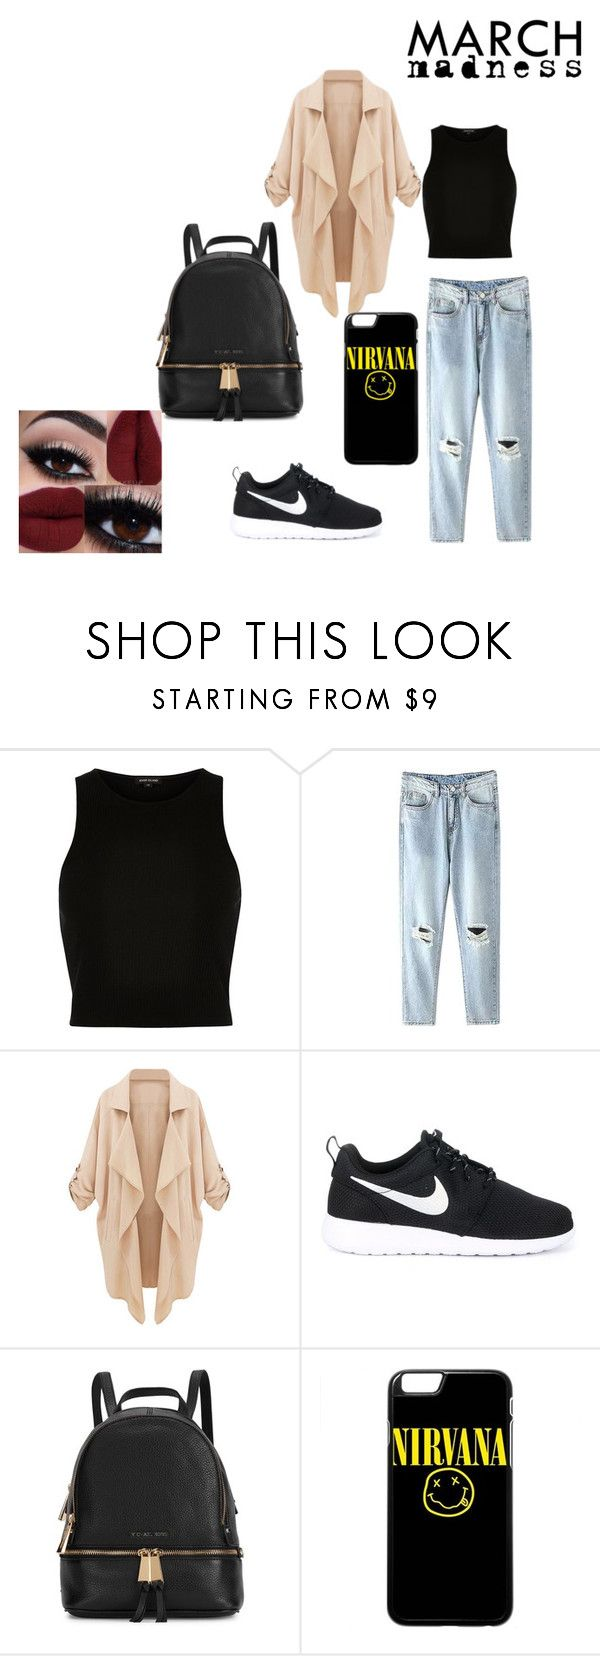 """""""#Casual"""" by dianacrystal on Polyvore featuring мода, River Island, NIKE и Michael Kors"""